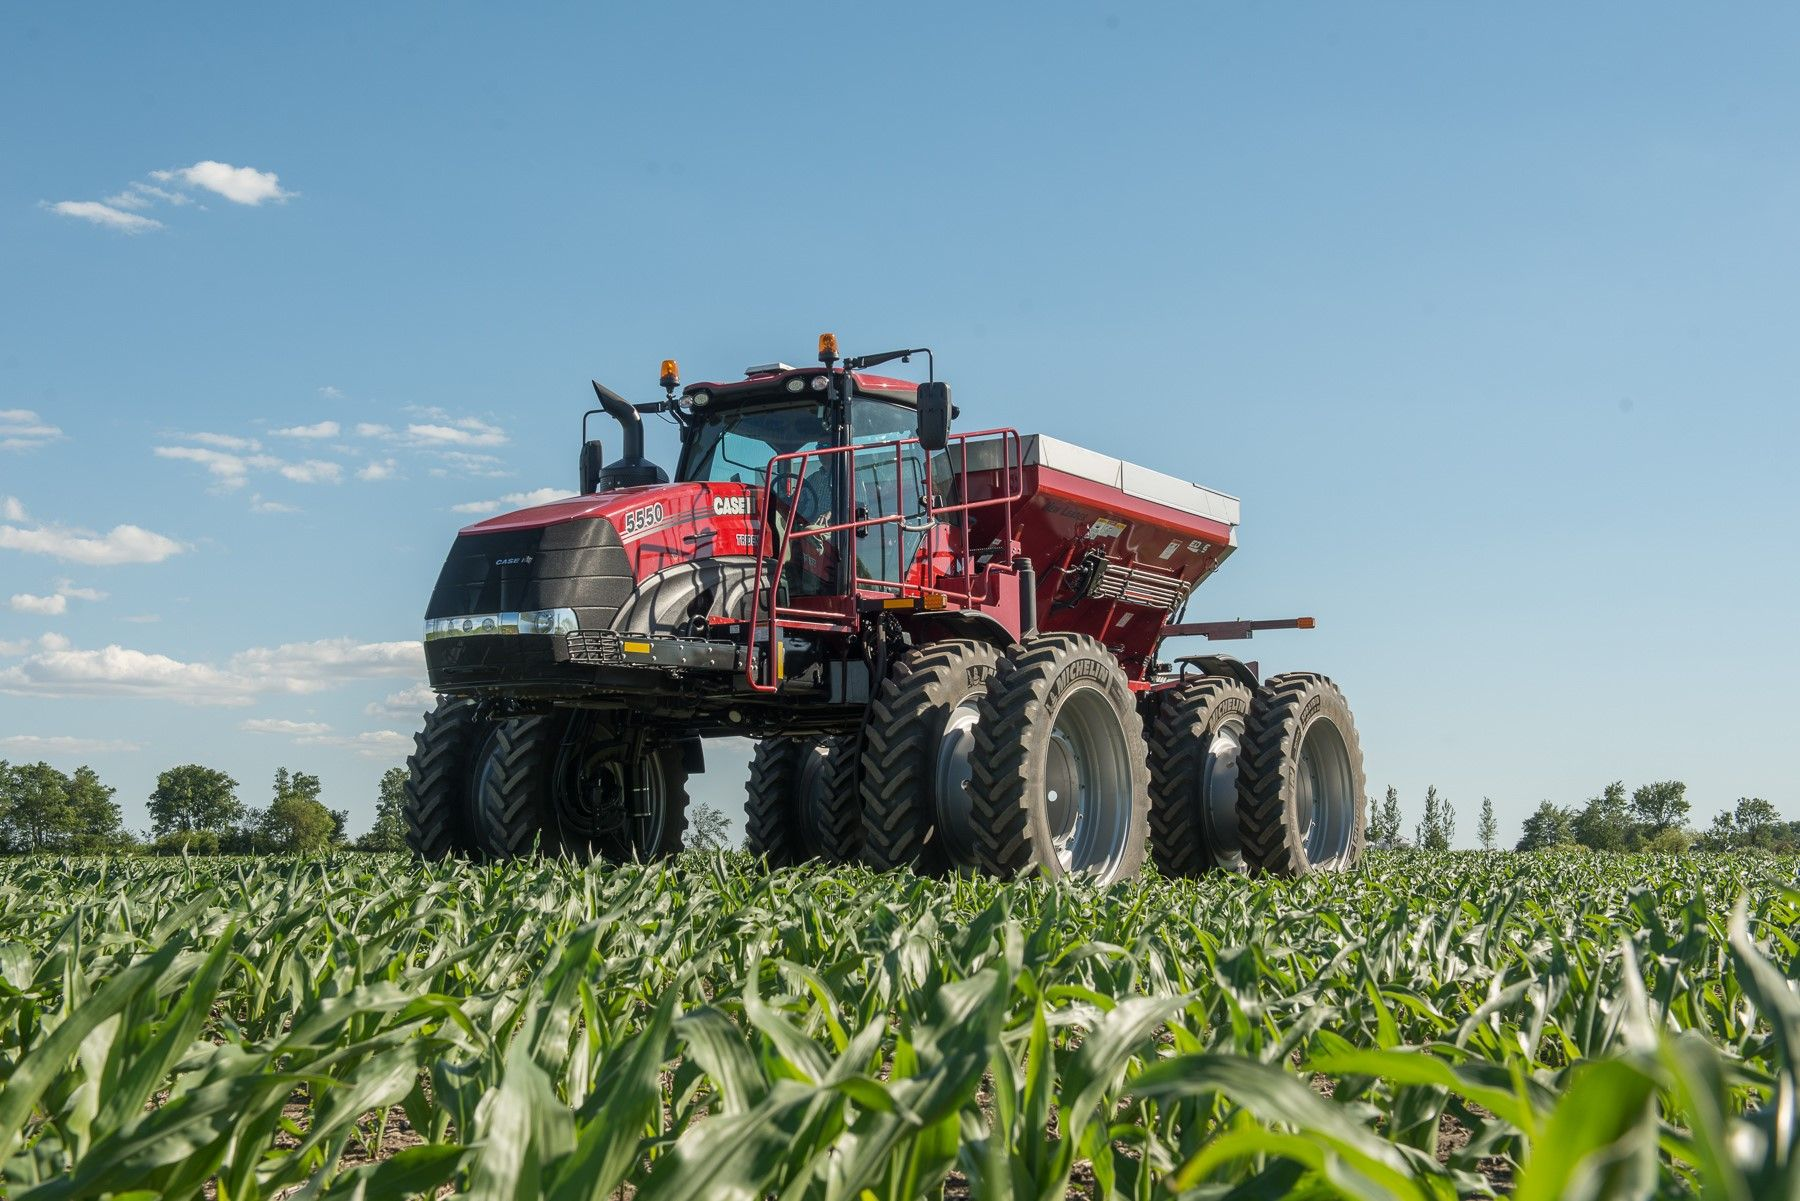 Case Ih Introduces Trident 5550 Applicator Case Ih Case